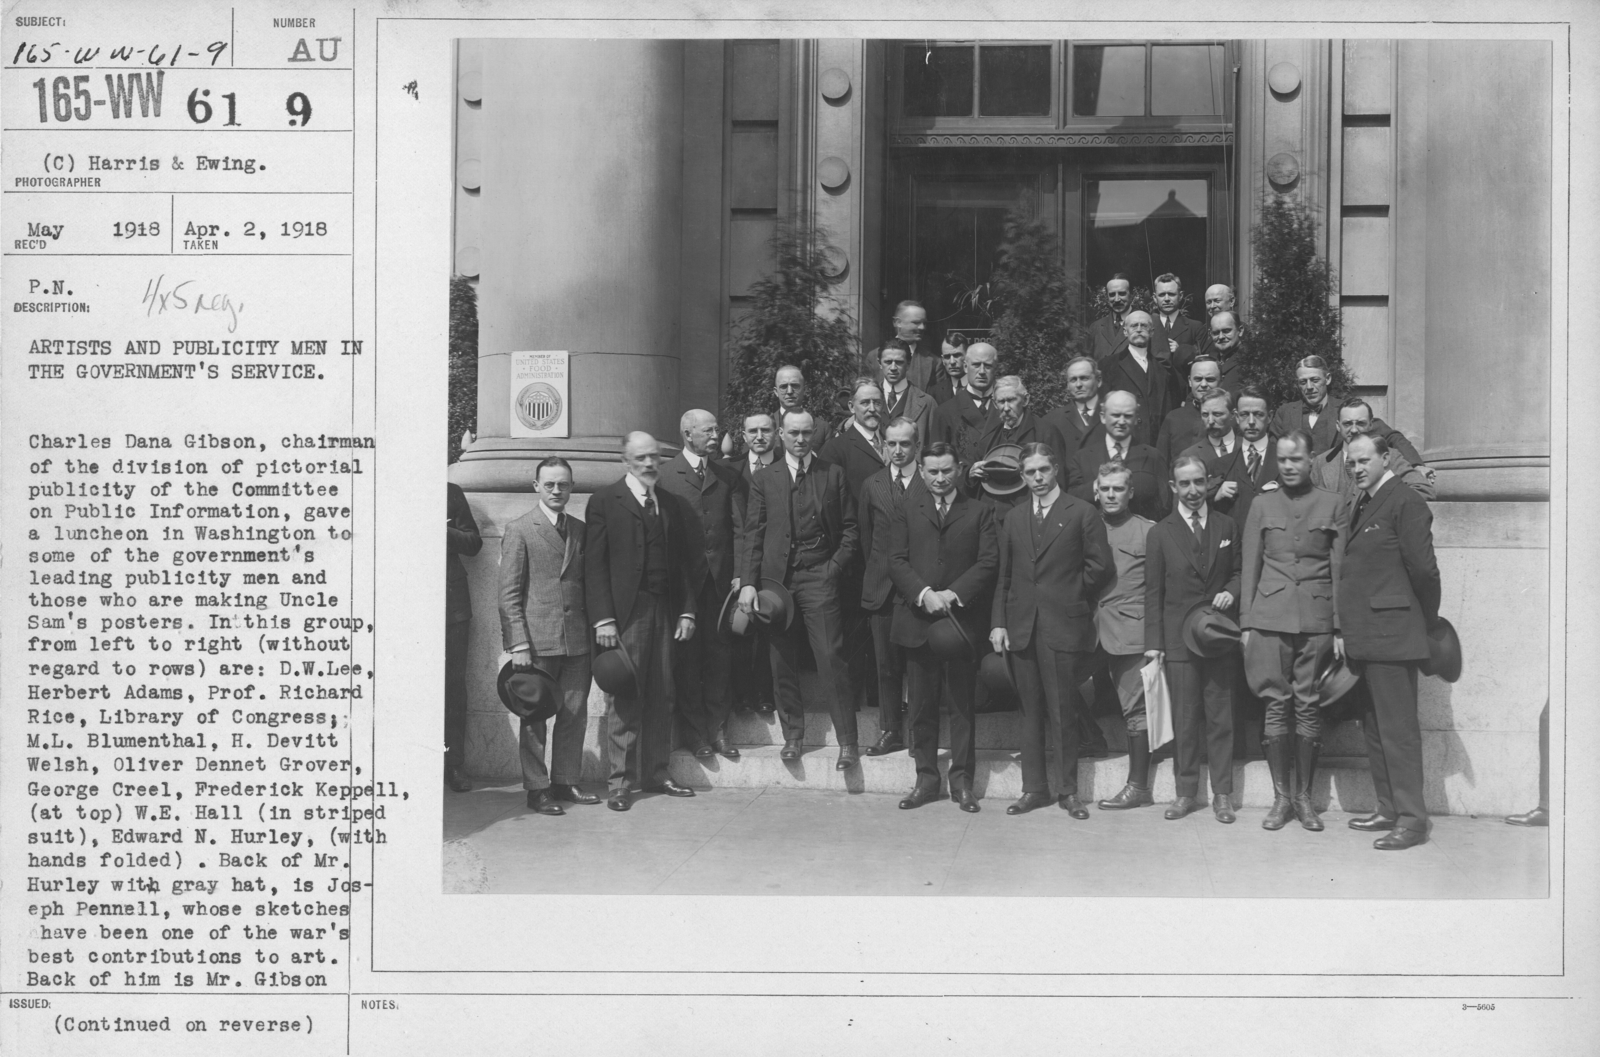 Artists - Artists and publicity men in the Government's service. Charles Dana Gibson, chairman of the division of pictorial publicity of the Committee on Public Information, gave a luncheon in Washington to some of the government's leading publicity men and those who are making Uncle Sam's posters. In this group,  from left to right (without regard to rows) are: D.W. Lee, Herbert Adams, Prof. Richard Rice, Library of Congress; M.L. Blumenthal, H. Devitt Welsh, Oliver Dennet Grover, George Creel, Frederick Keppell, (at top) W.E. Hall (in stripped suit), Edward N. hurley, (with hands folded). Back of Mr. Hurley with gray hat, is Joseph Pennell, whose sketches have been one of the war's best contributions to art. Back of him is Mr. Gibson and back of him R.D. Heini, editor of the Emergency Fleet News. Next to Mr. Hurley is Charles Piez, President of the Emergency Fleet Corporation; next to him Major Kendall Banning, above Major Banning, Joseph P. Tumulty, and back of him Dr. H.S. Garfield, Fuel Administrator. On the next step above is E.H. Blashfield, and on the top step M. Louis Aubert, of the French High Commission, Carl Milan and Francis Jones. Admiral Samuel McGowan's uniform is discernible near the sculptor. At the extreme right is F.D. Casey, art editor of Collier's. Apr. 2, 1918